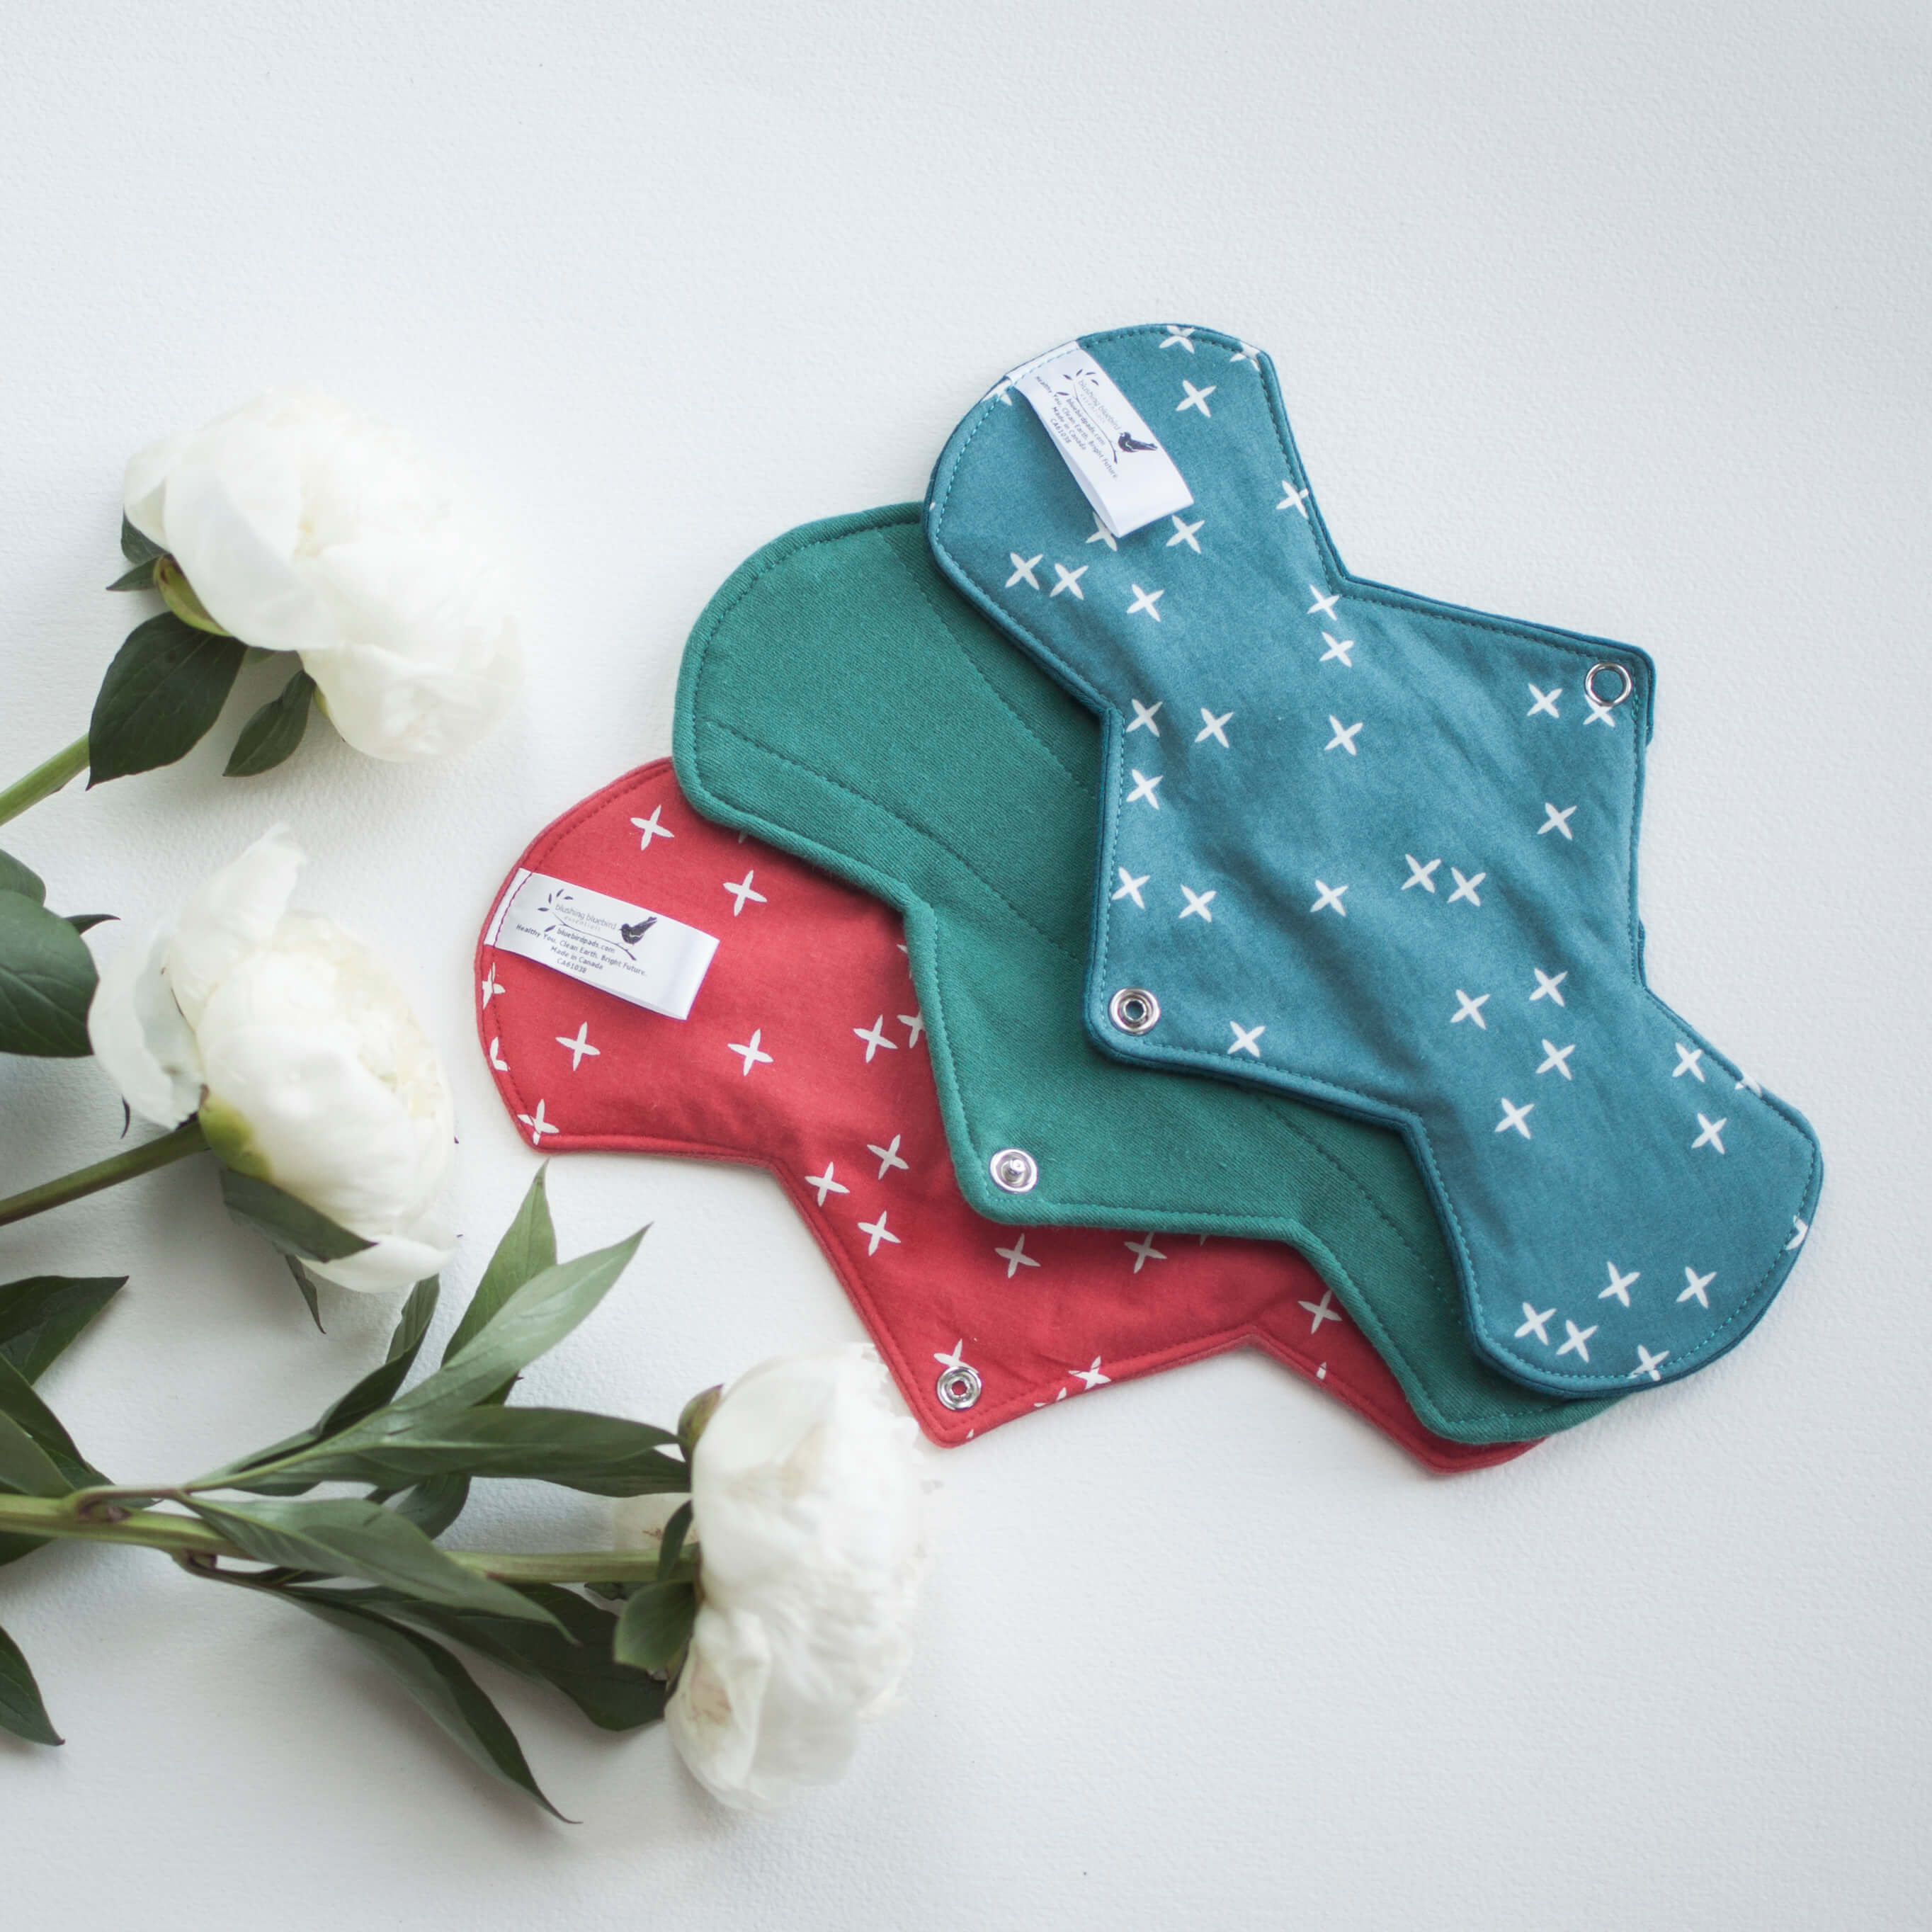 Super Day Reusable Cloth Pad